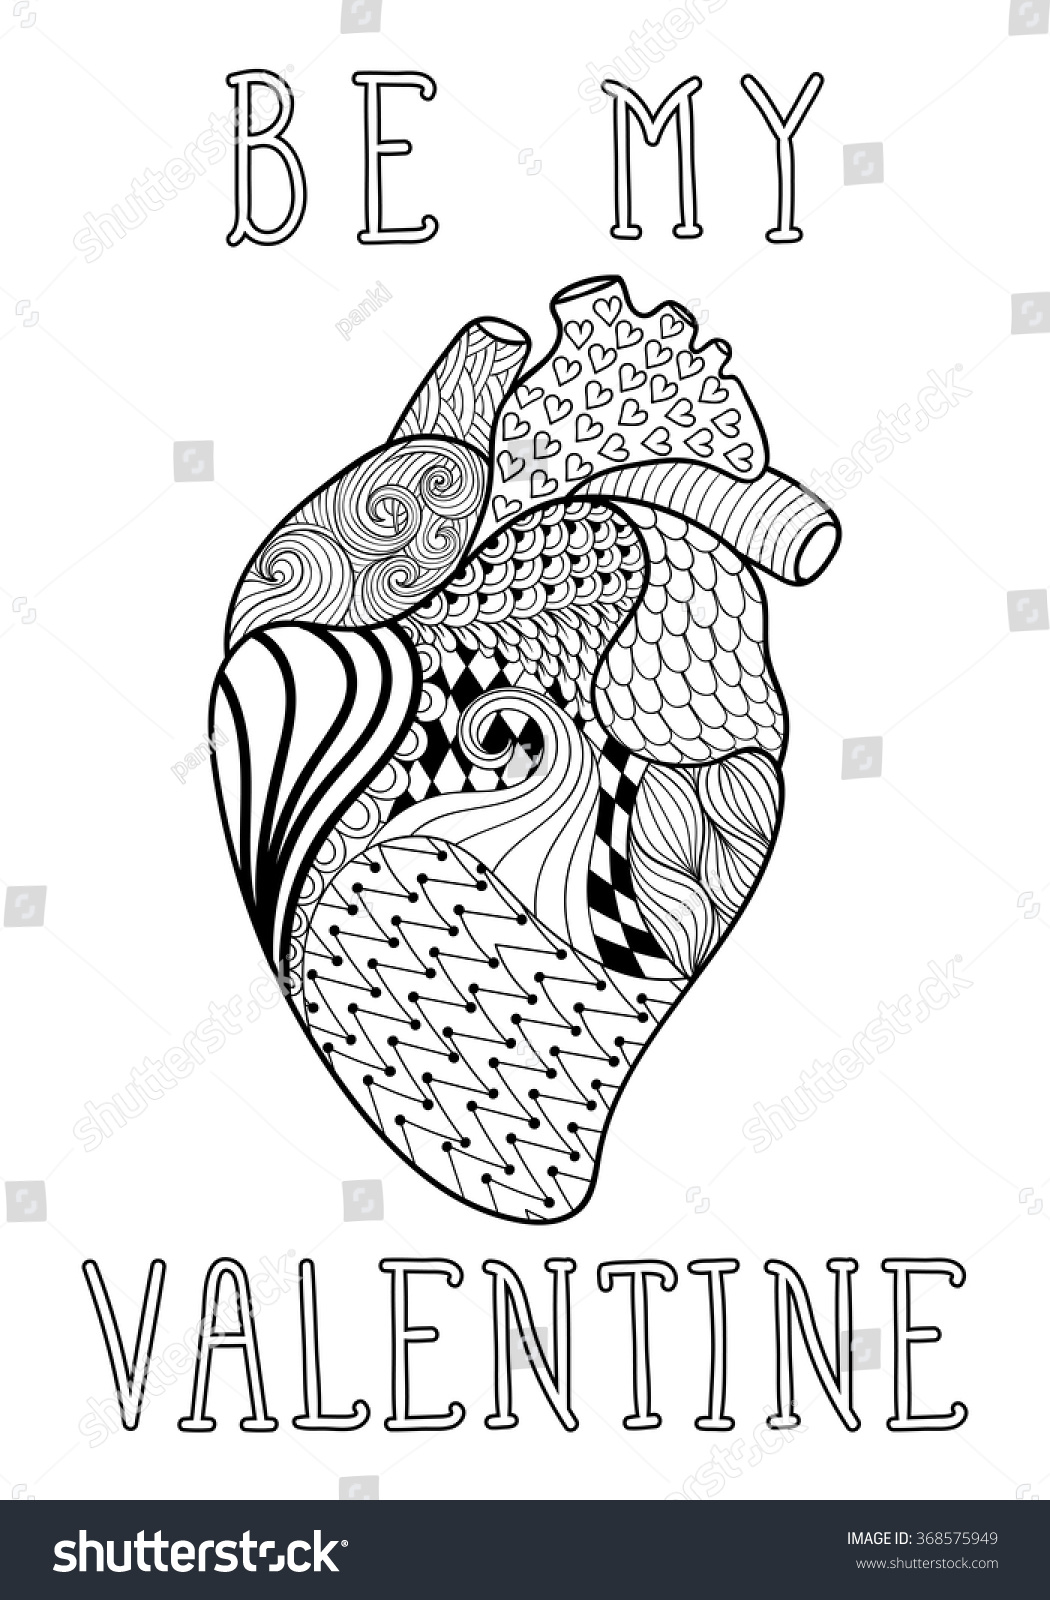 Drawing Printout How To Draw Valentine Heart Hands